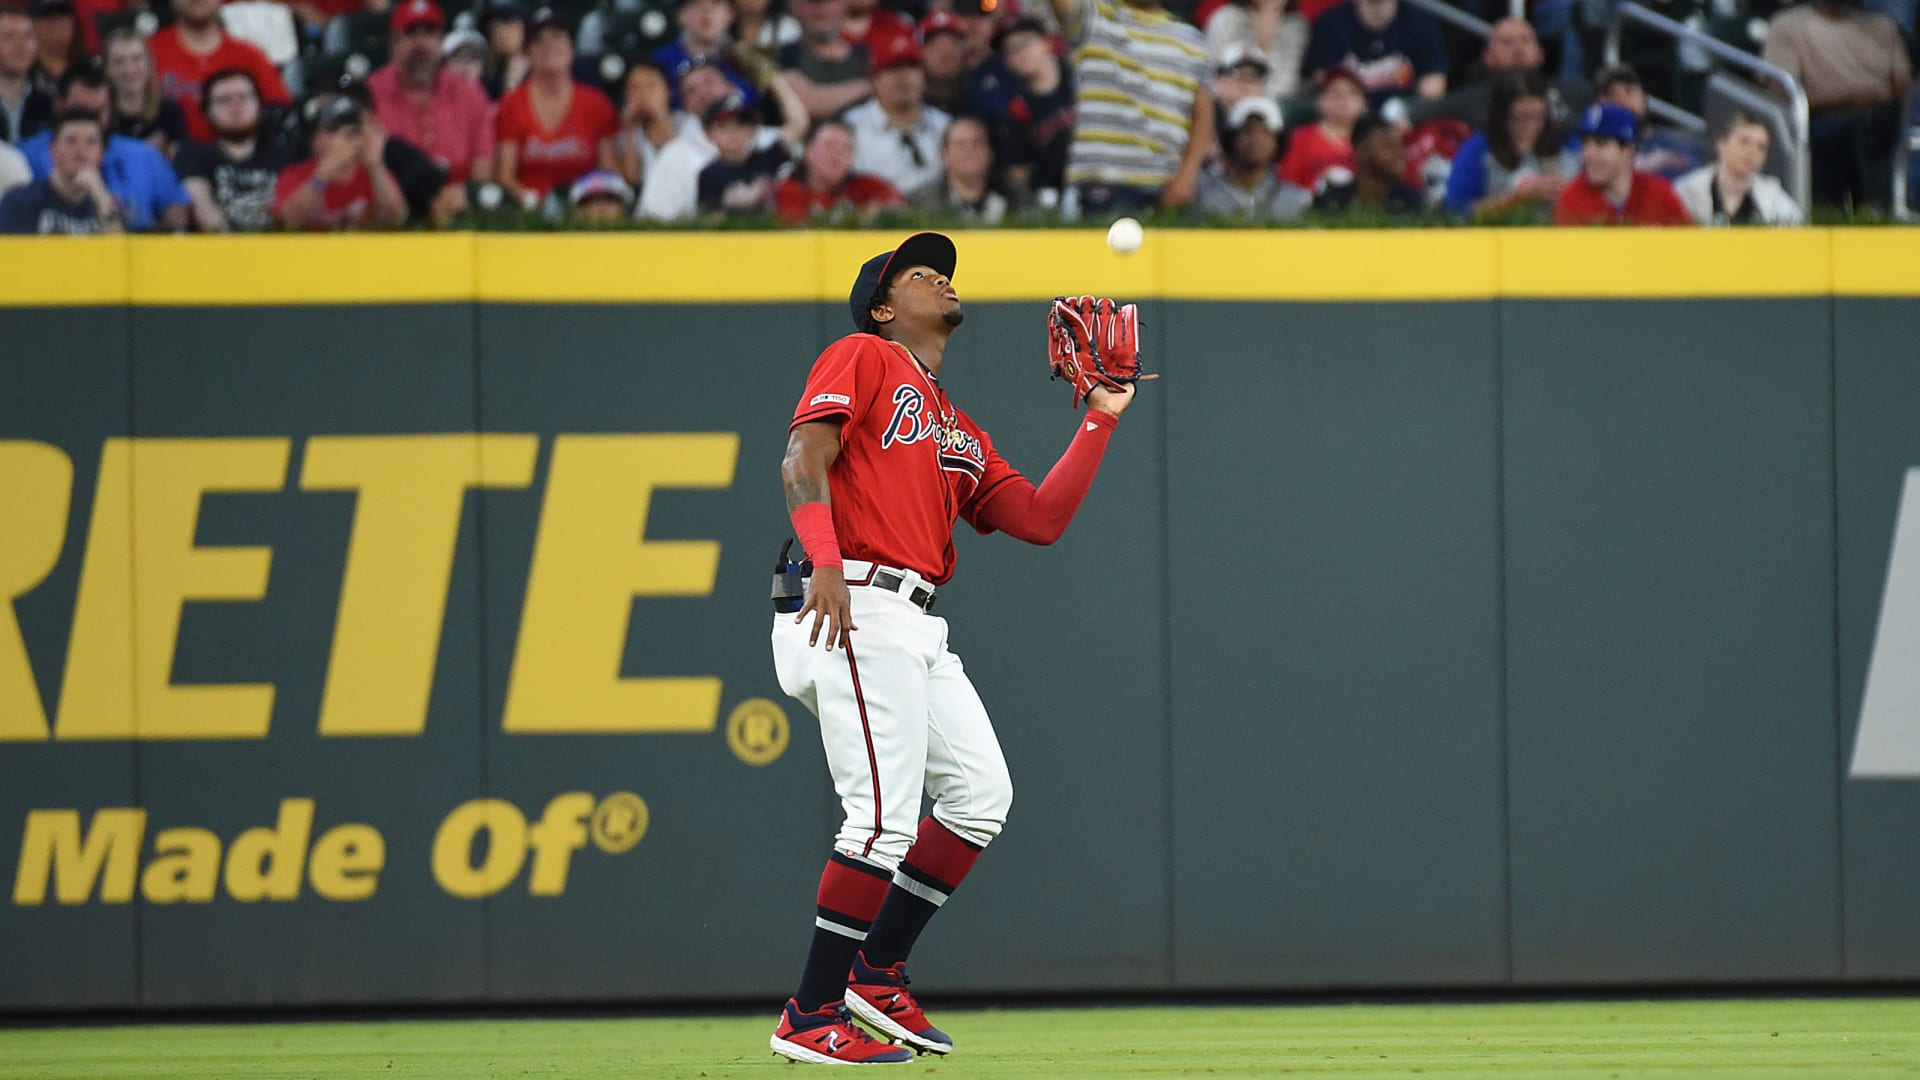 Atlanta Braves' Ronald Acuna: some success, but adjustment needed?